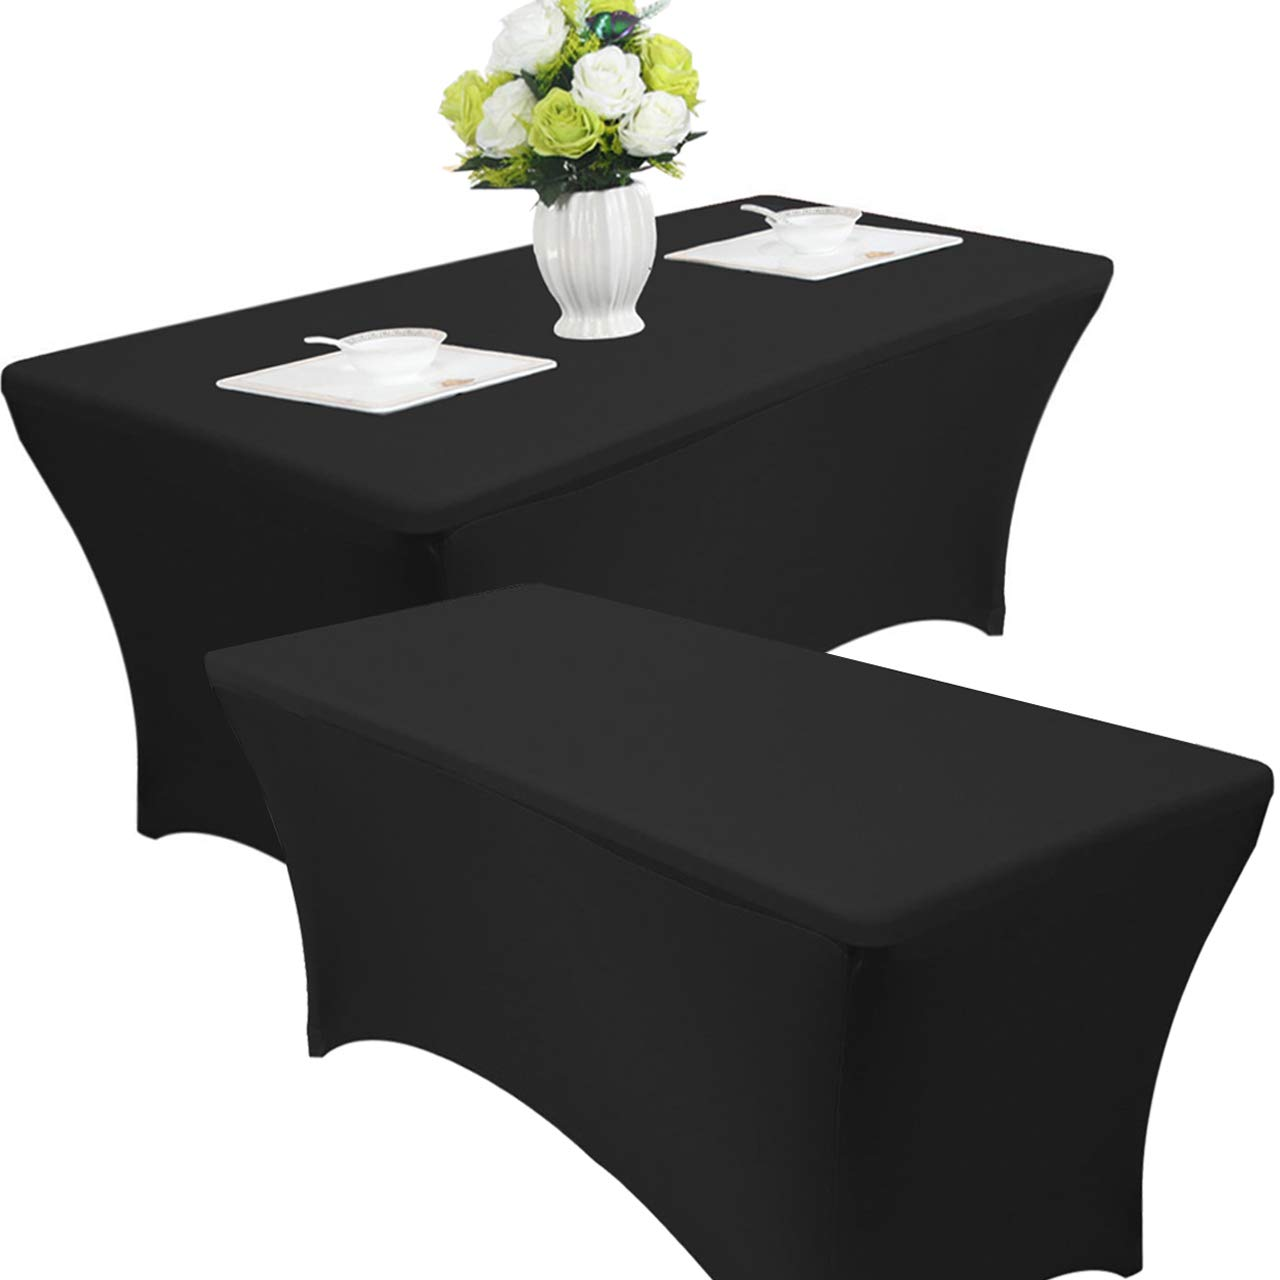 Reliancer 2 Pack 4\6\8FT Rectangular Spandex Table Cover Four-Way Tight Fitted Stretch Tablecloth Table Cloth for Outdoor Party DJ Tradeshows Banquet Vendors Weddings Celebrations (6FT, Black)